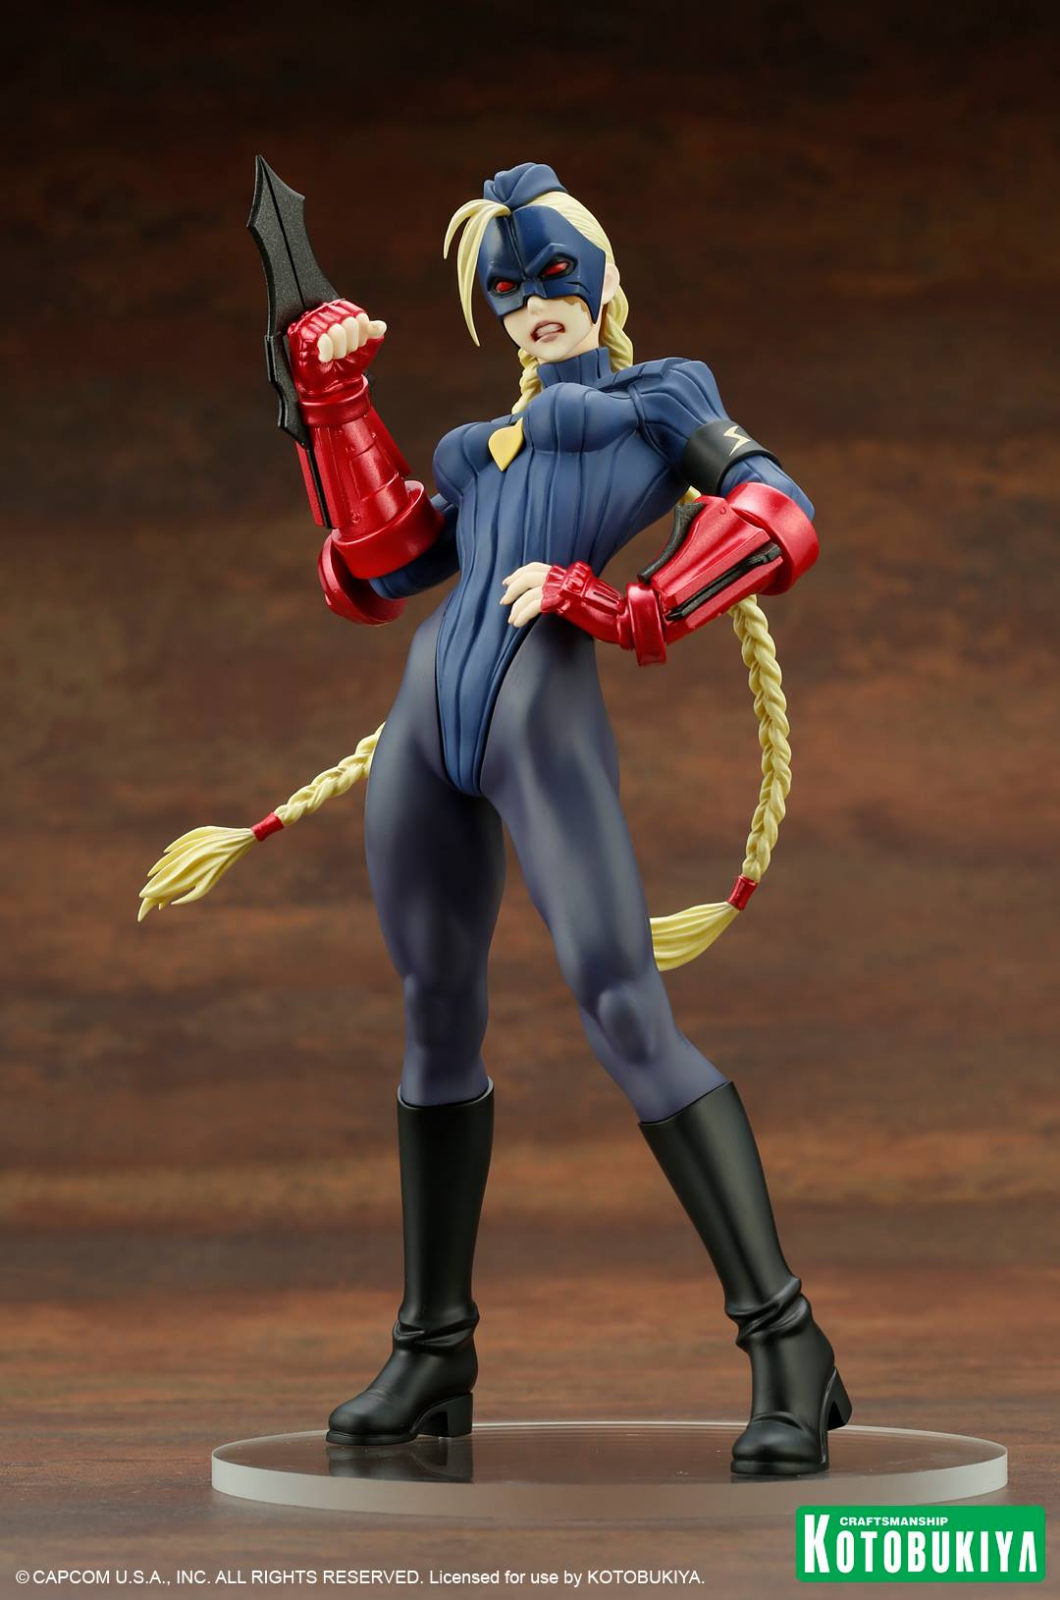 KOTOBUKIYA BISHOUJO STREET FIGHTER DECAPRE  FIGURE   STATUE 1 7 SCALE IN STOCK